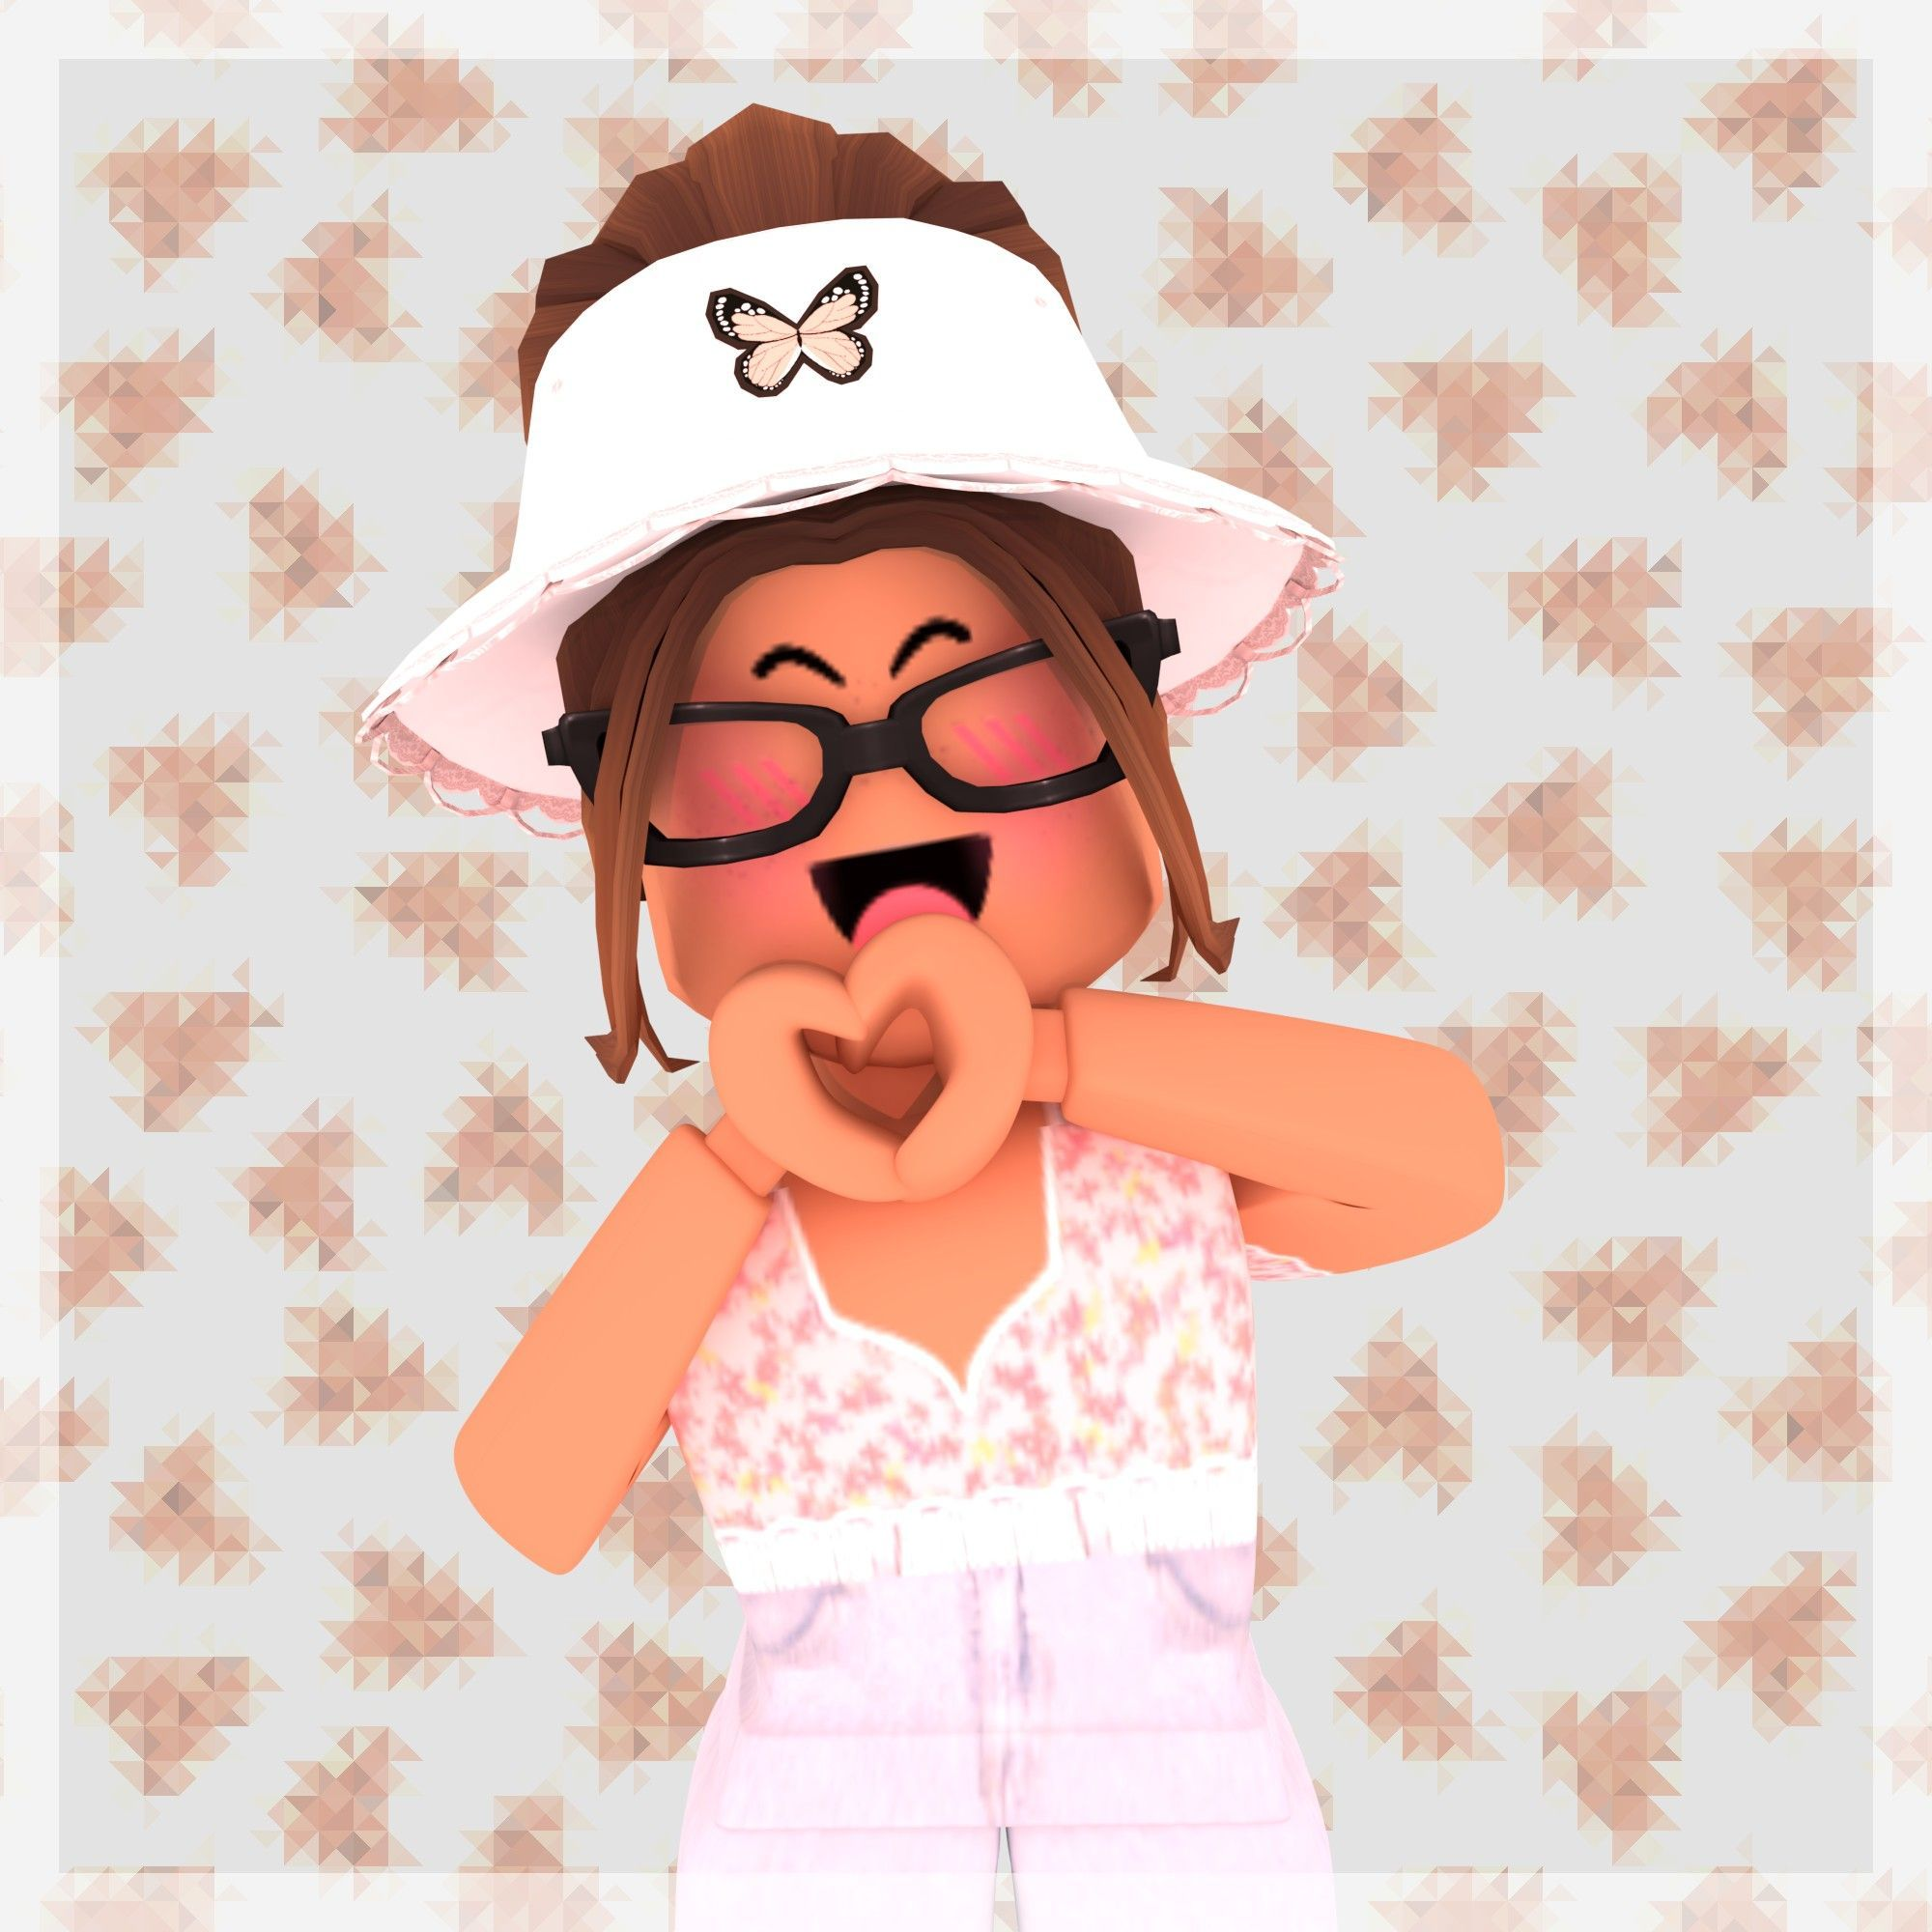 Pin By Melanie Gonzalez On Roblox In 2020 Roblox Animation Brown Hair Roblox Black Hair Roblox